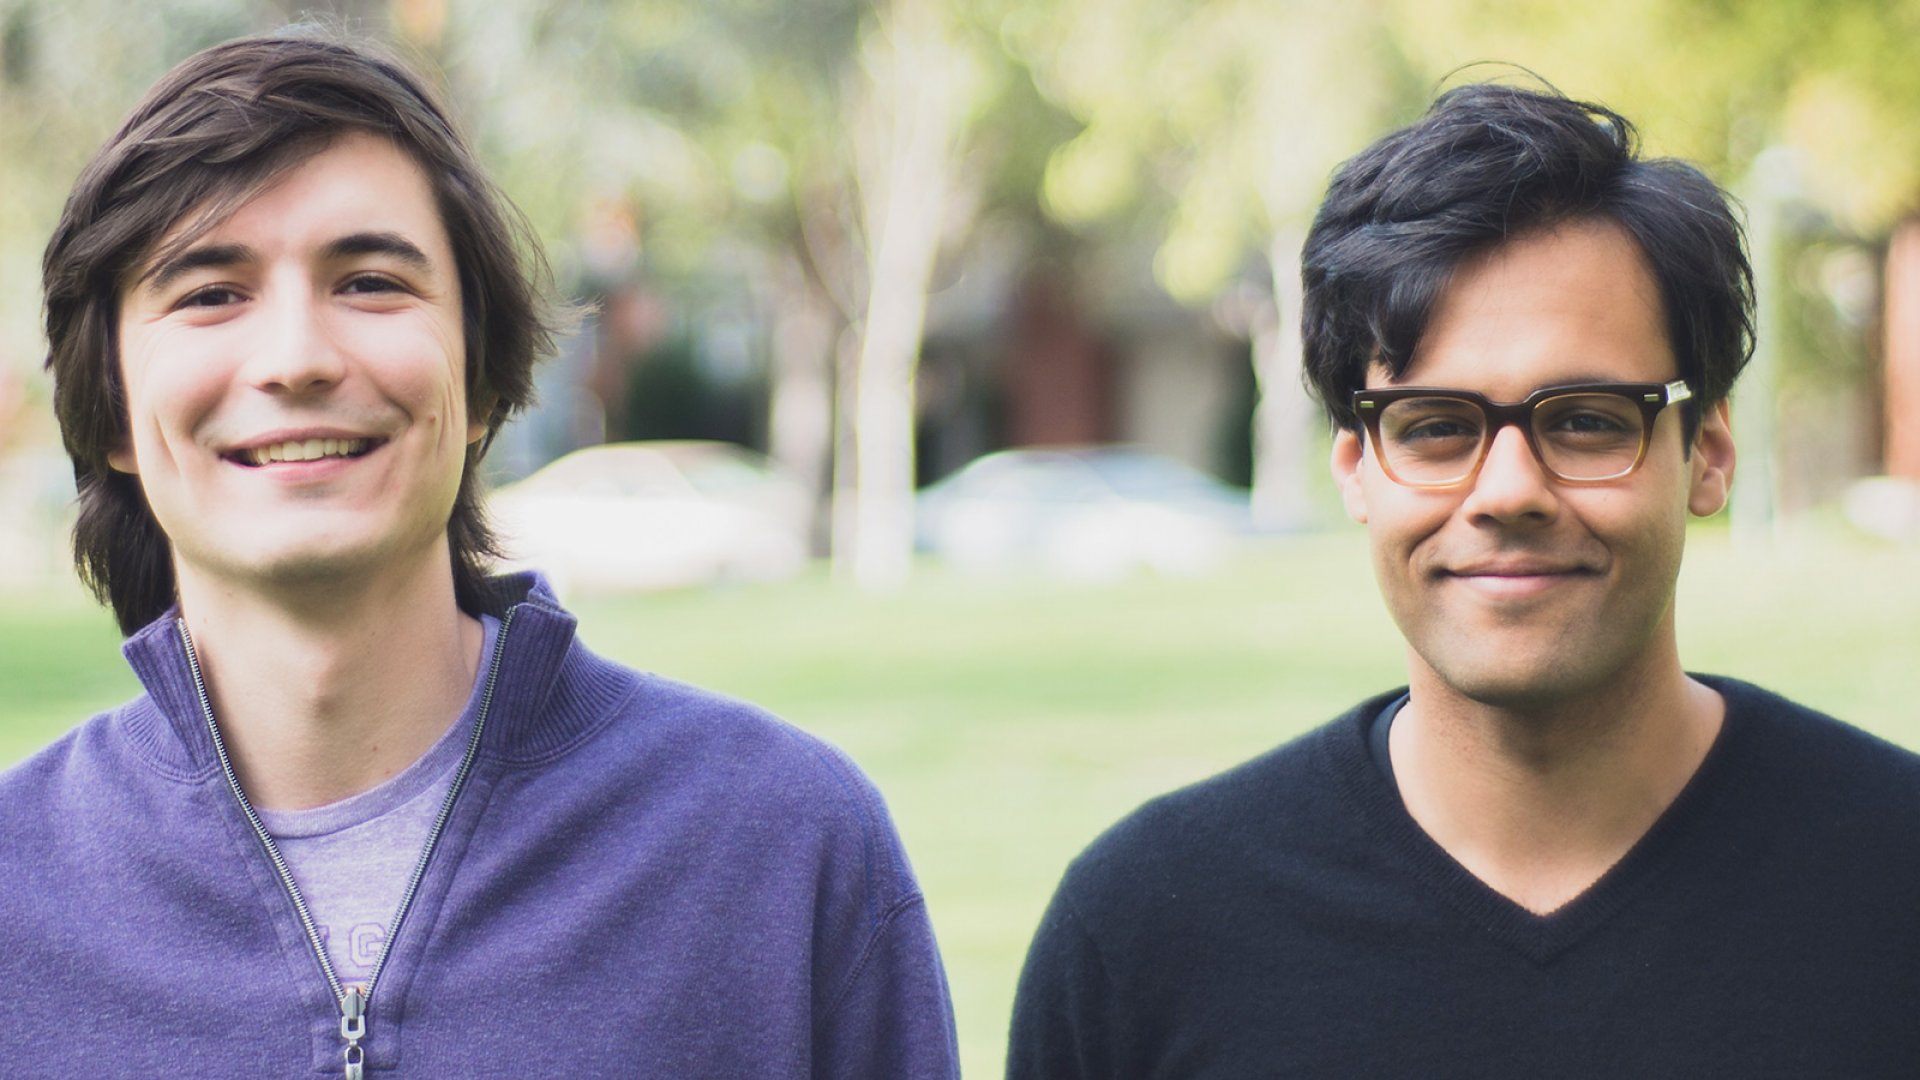 Robinhood co-founders Vladimir Tenev (left) and Baiju Bhatt.